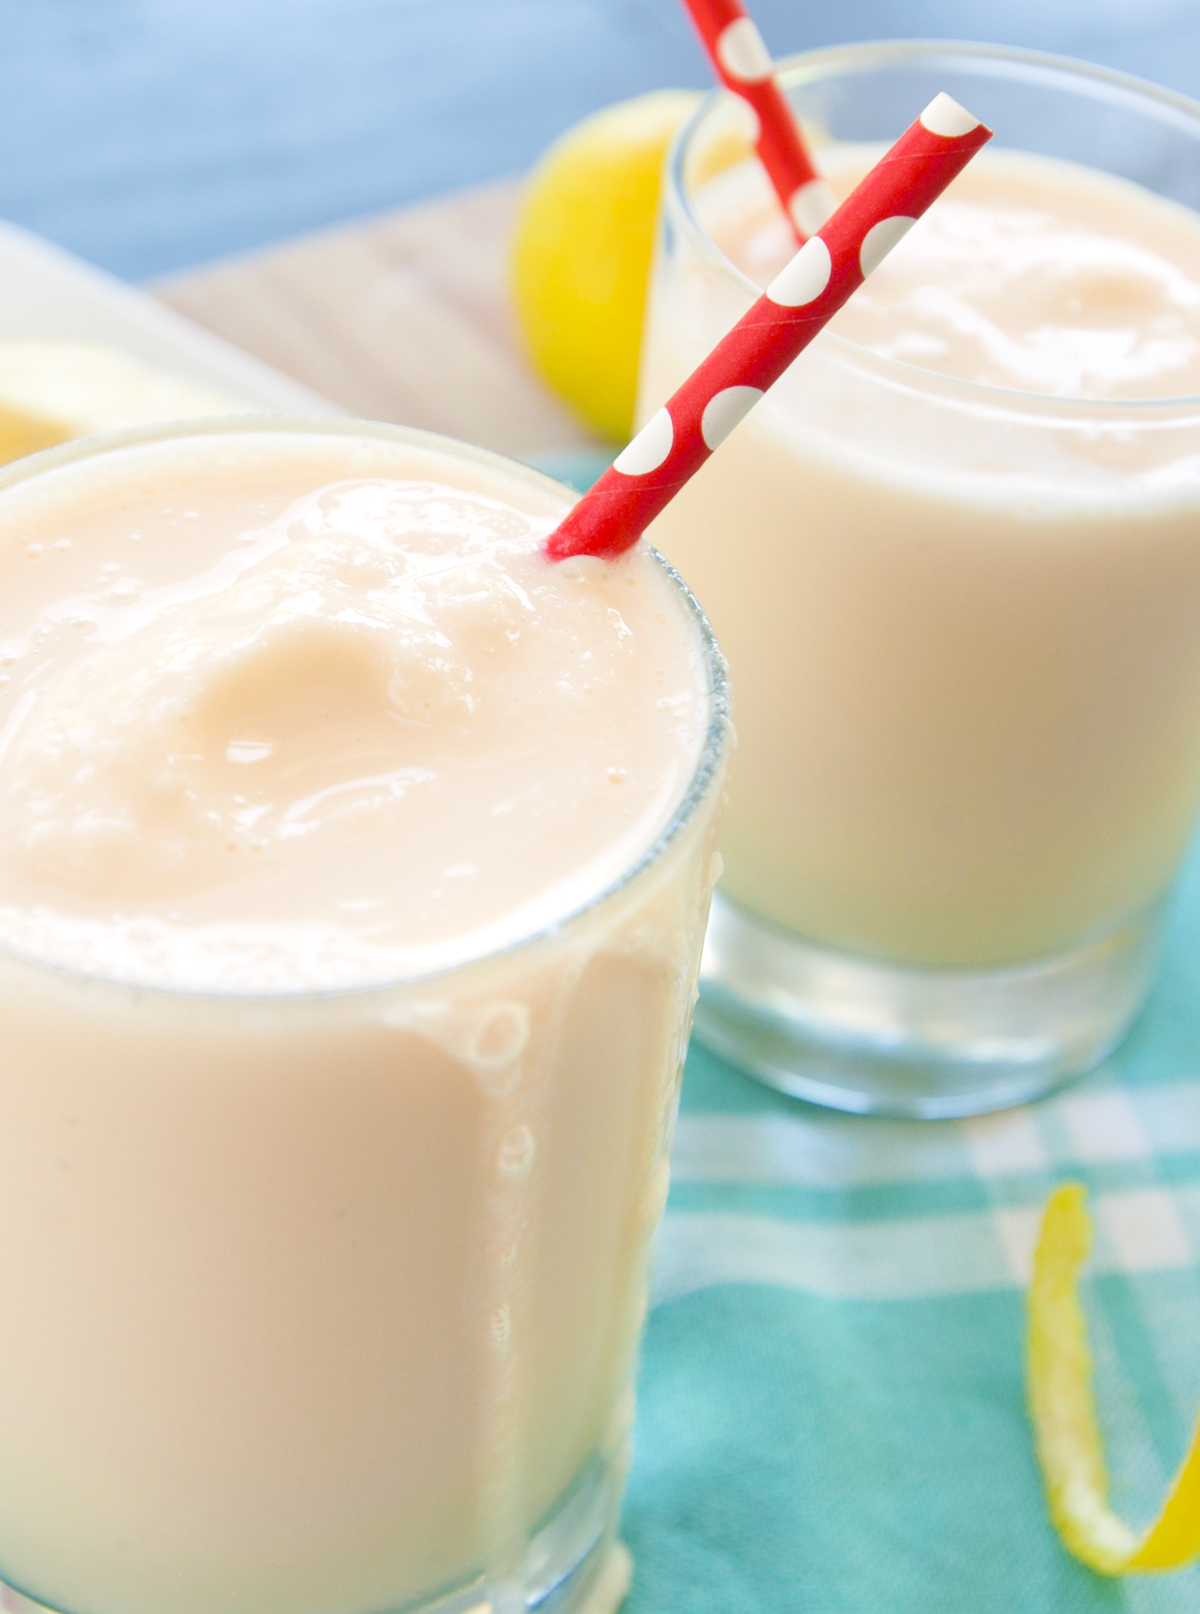 Close up of frosted lemonade with a drizzle leaking down the side of the glass